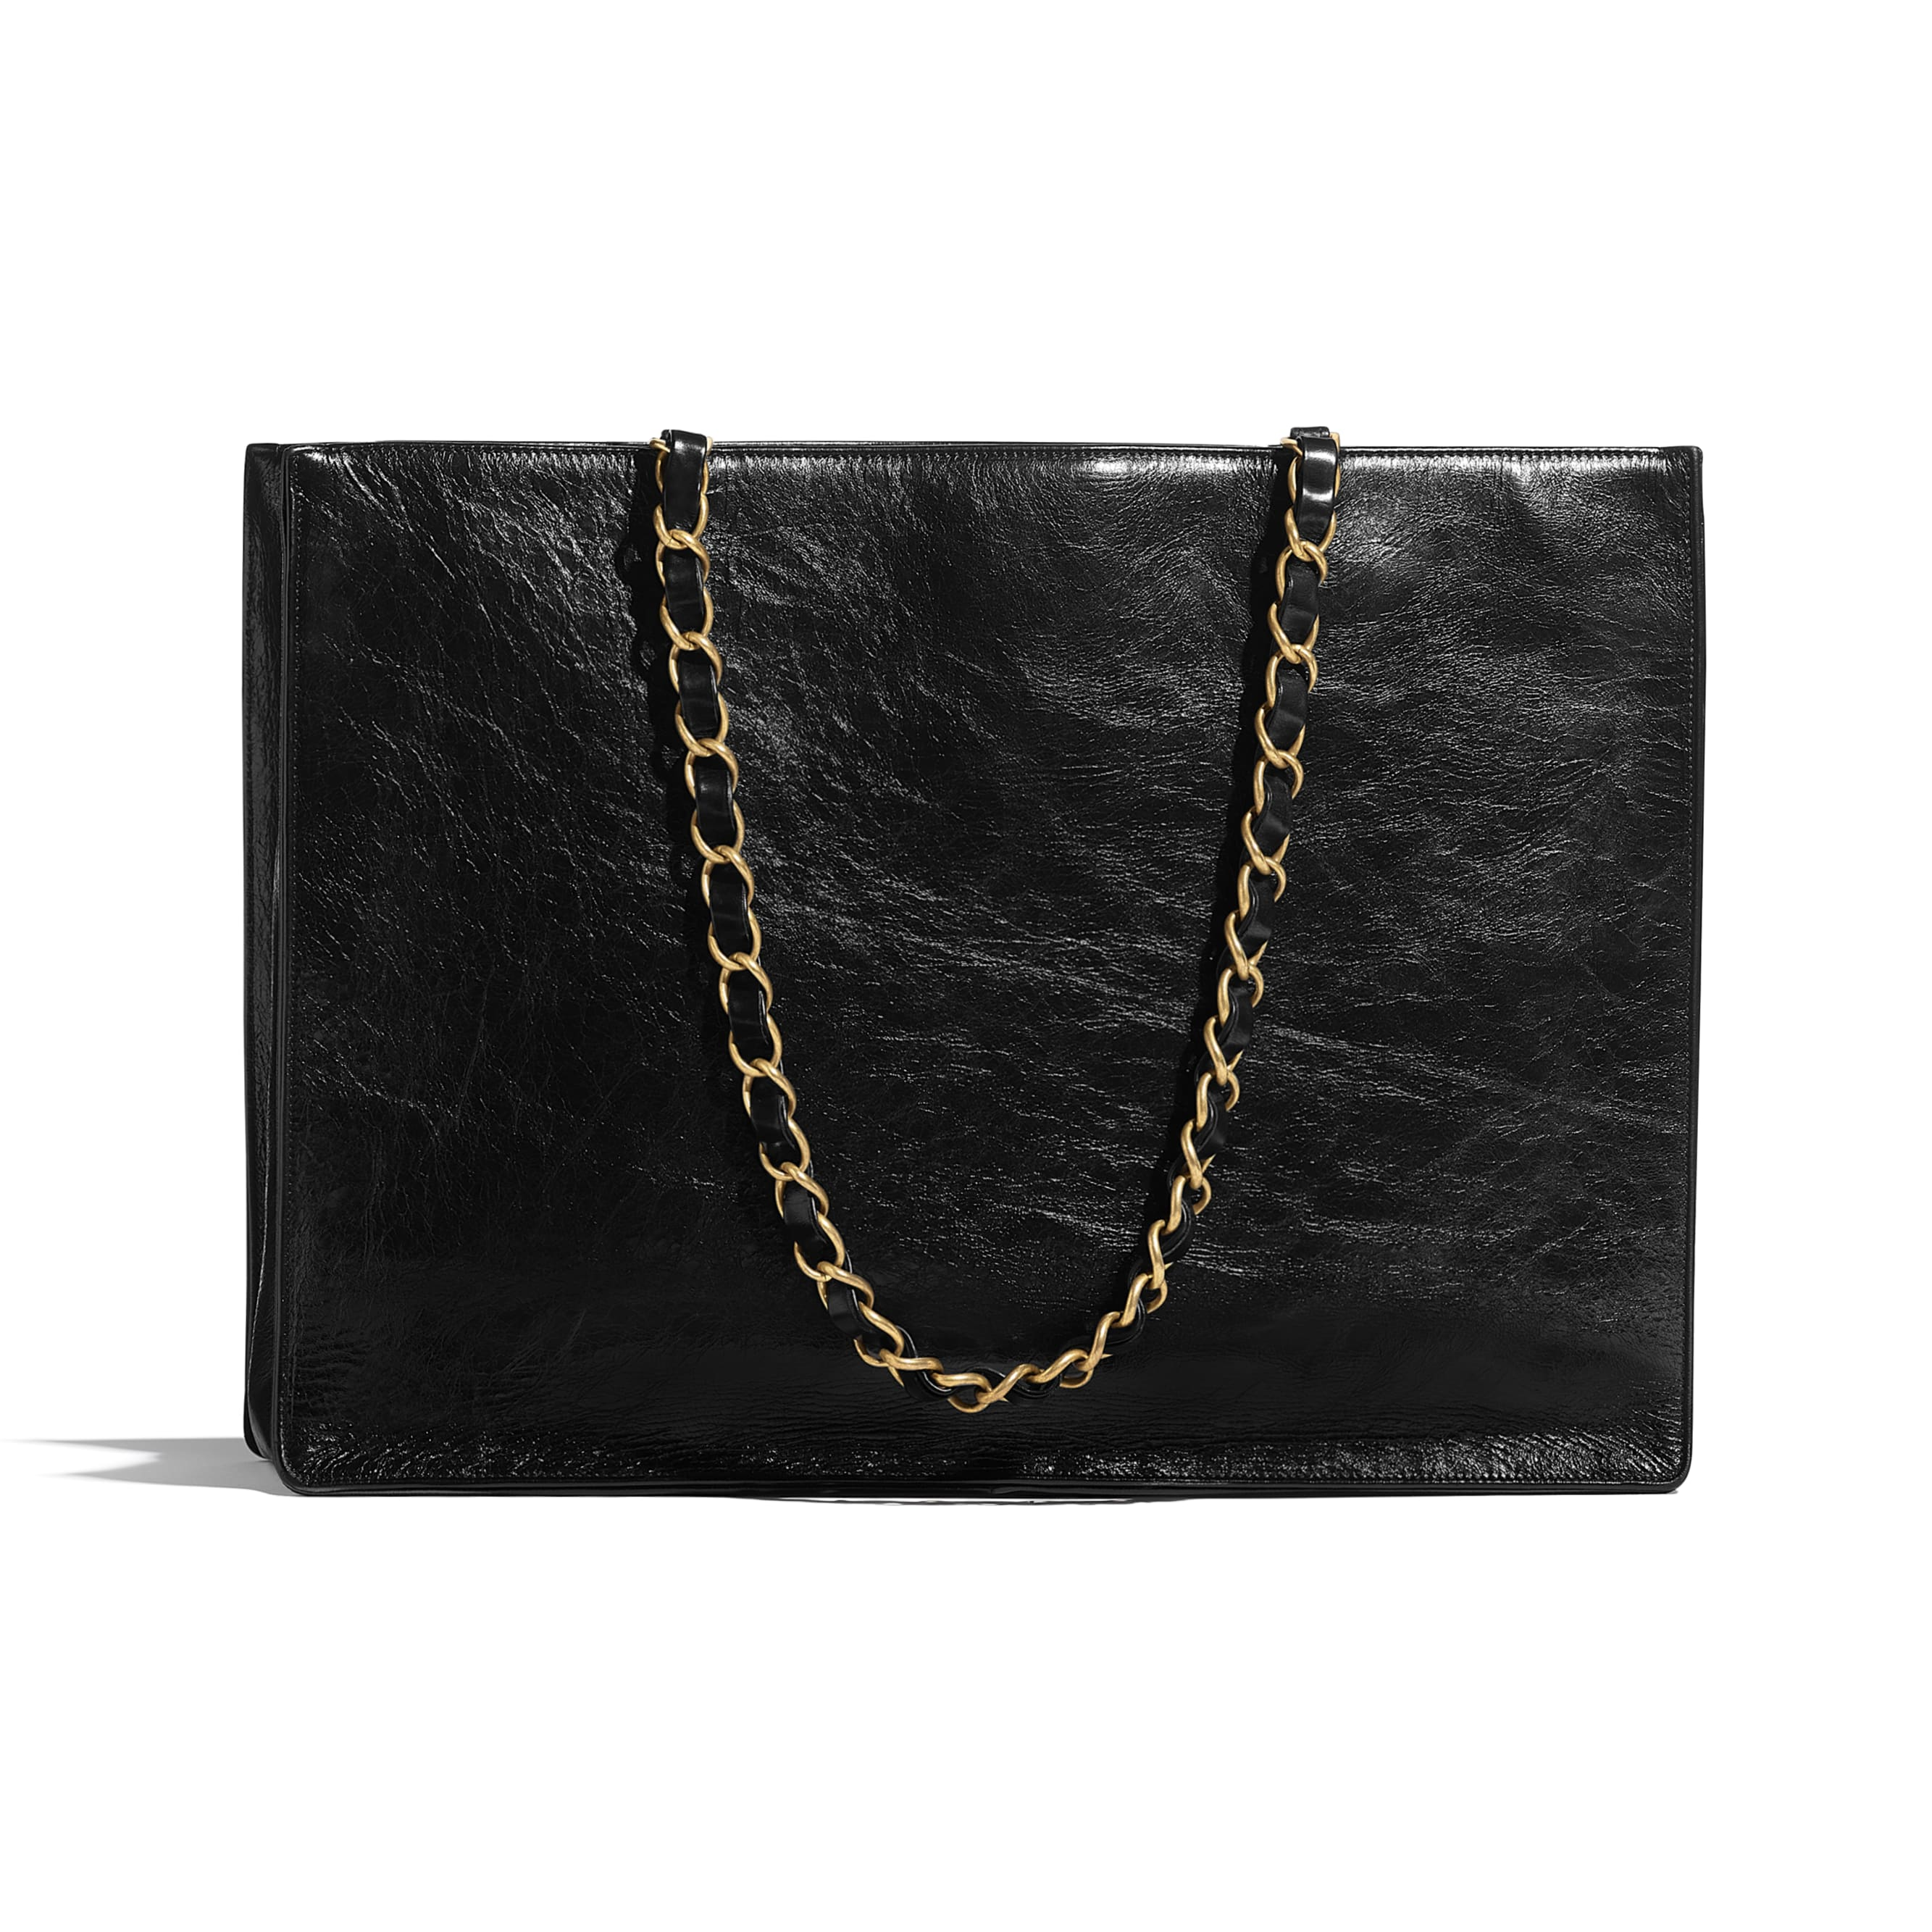 Large Shopping Bag - Black - Shiny Aged Calfskin & Gold-Tone Metal - CHANEL - Alternative view - see standard sized version